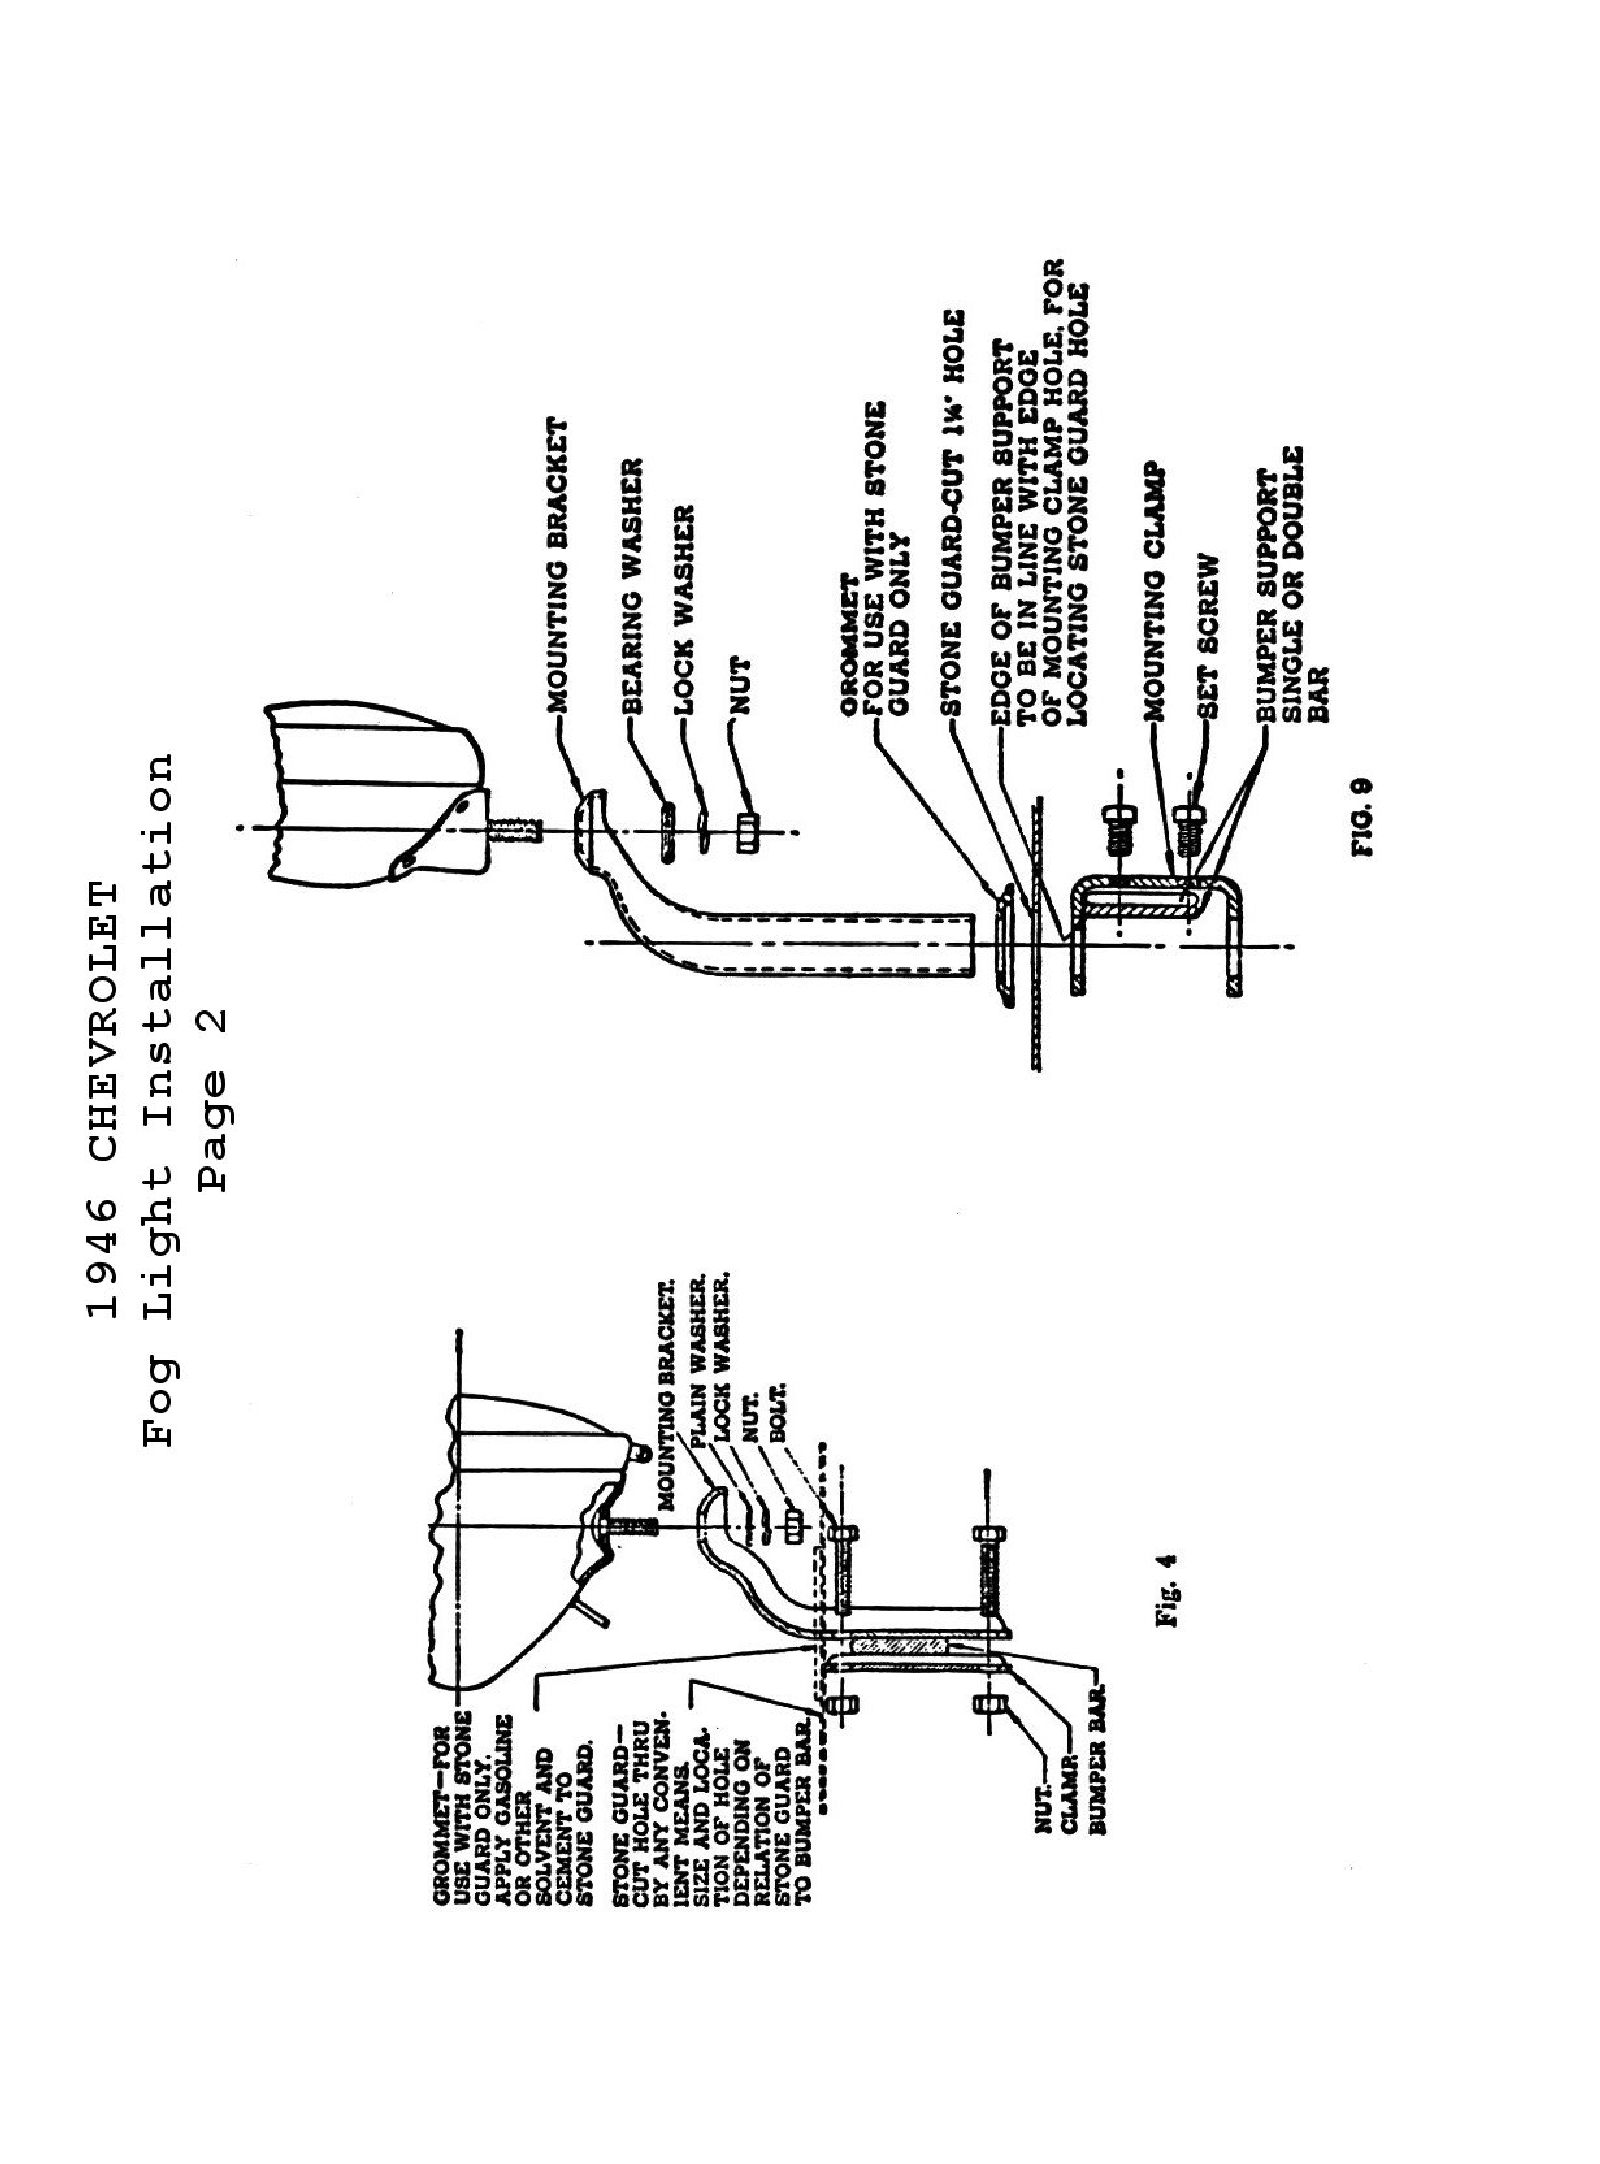 Chevy Wiring Diagrams 78 Dodge Truck 3 4